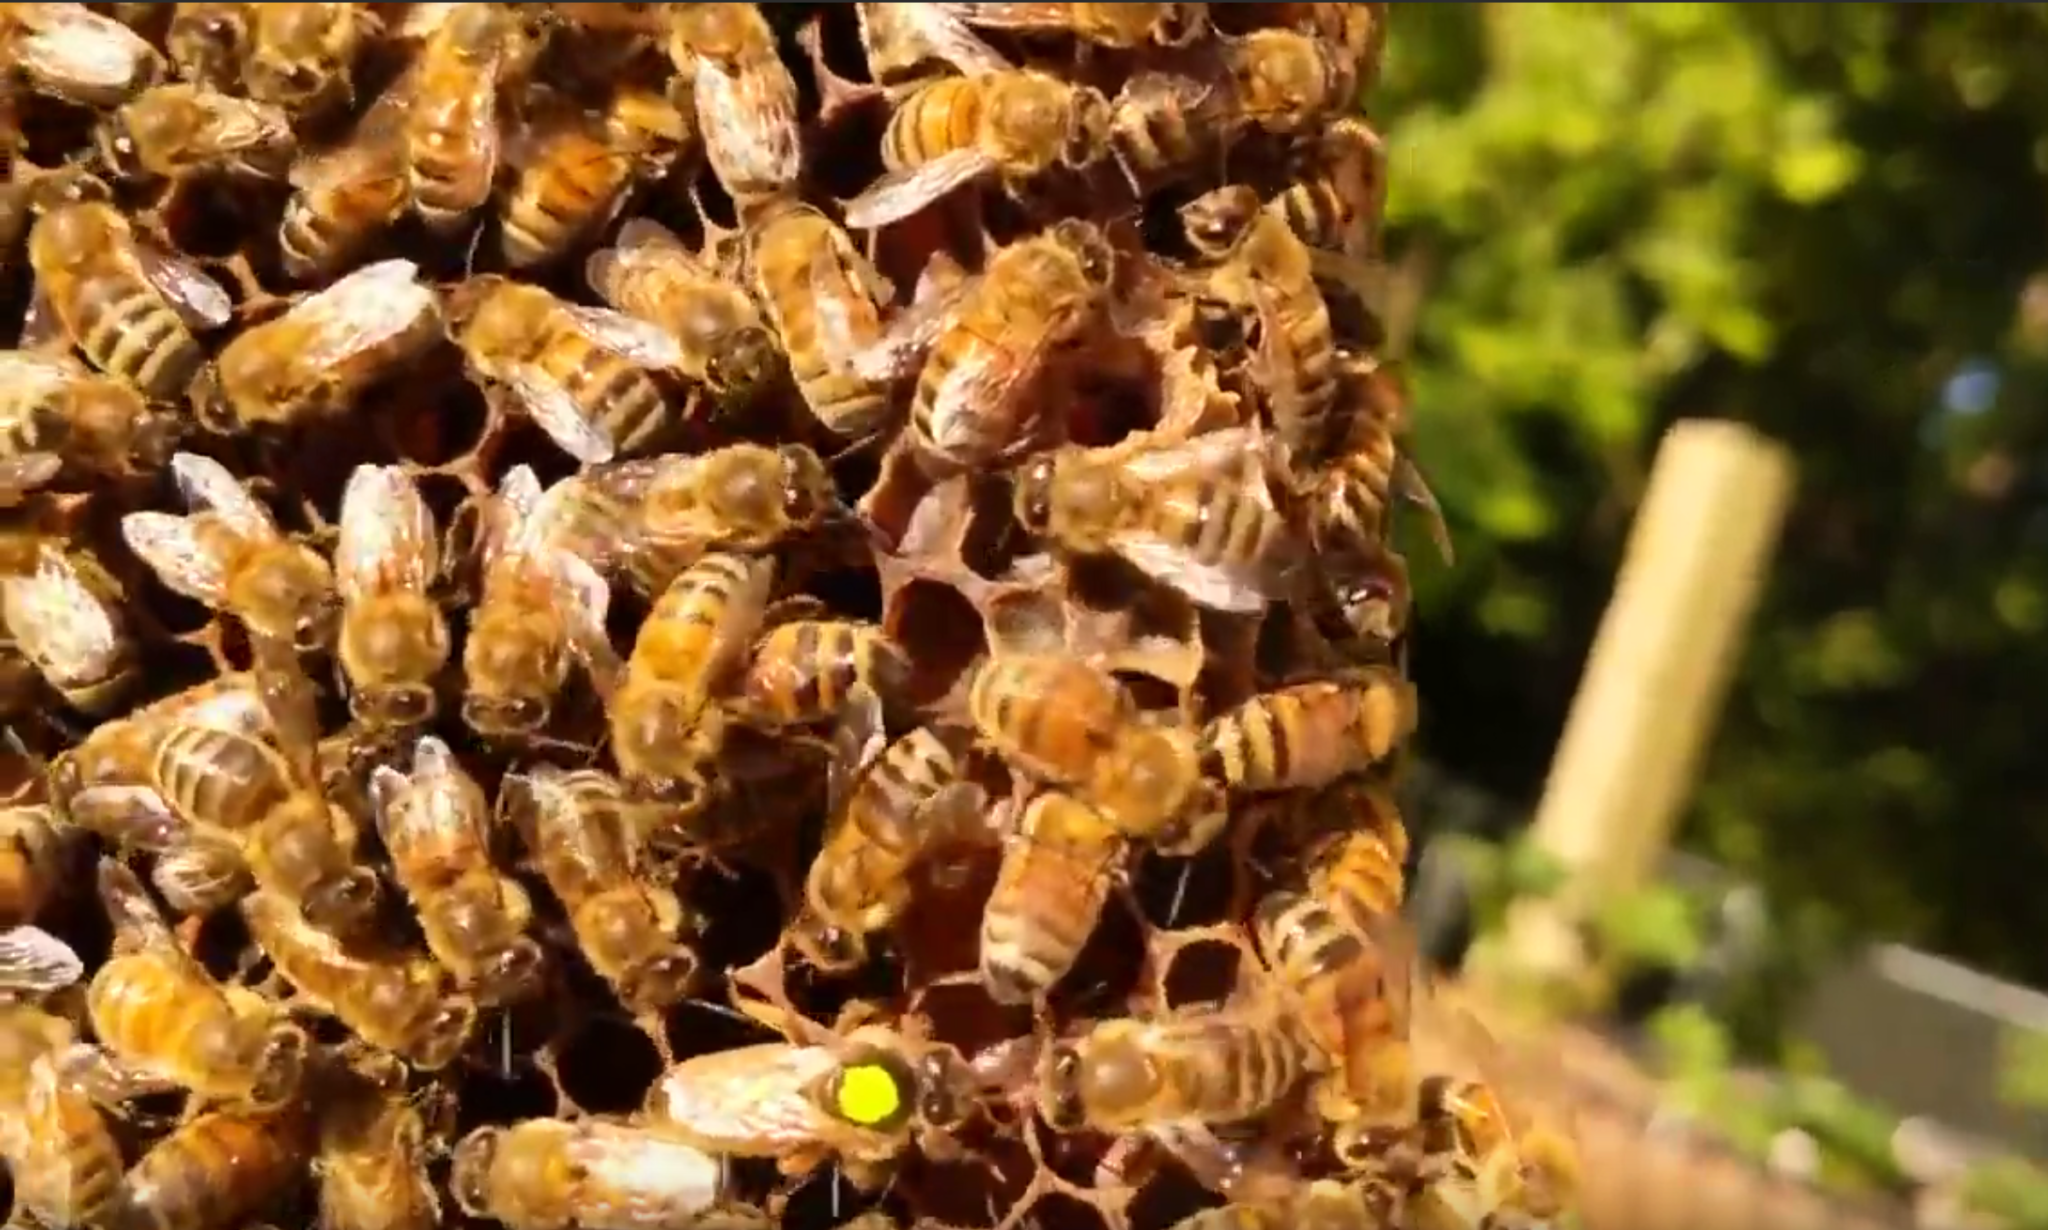 Hive inspection and a new queen